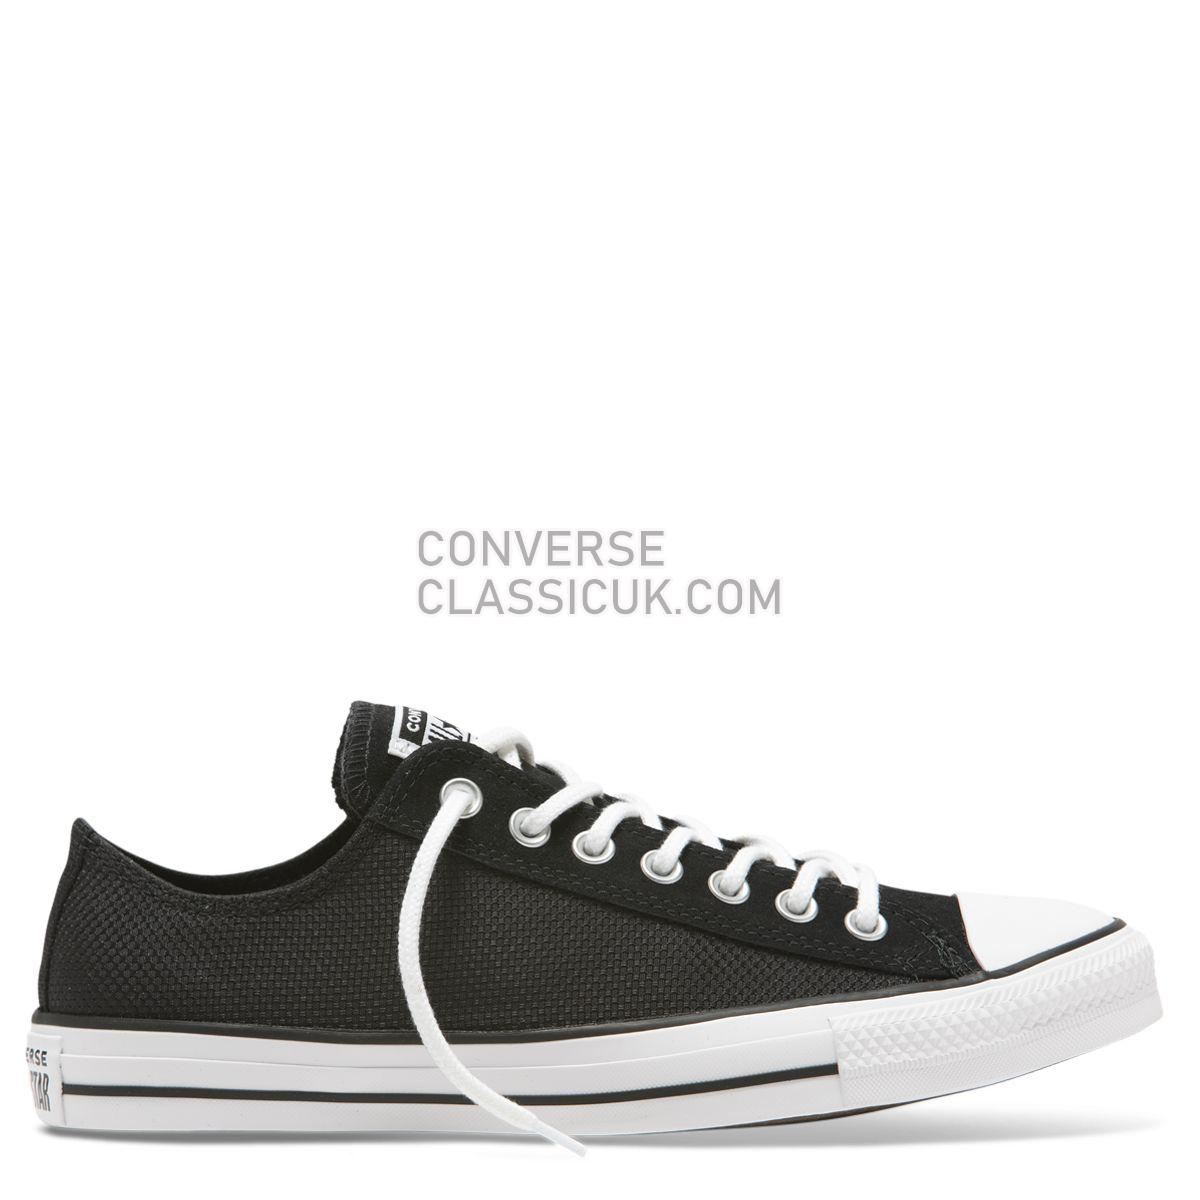 Converse Chuck Taylor All Star Utility Low Top Black Mens Womens Unisex 165334 Black/White/Black Shoes